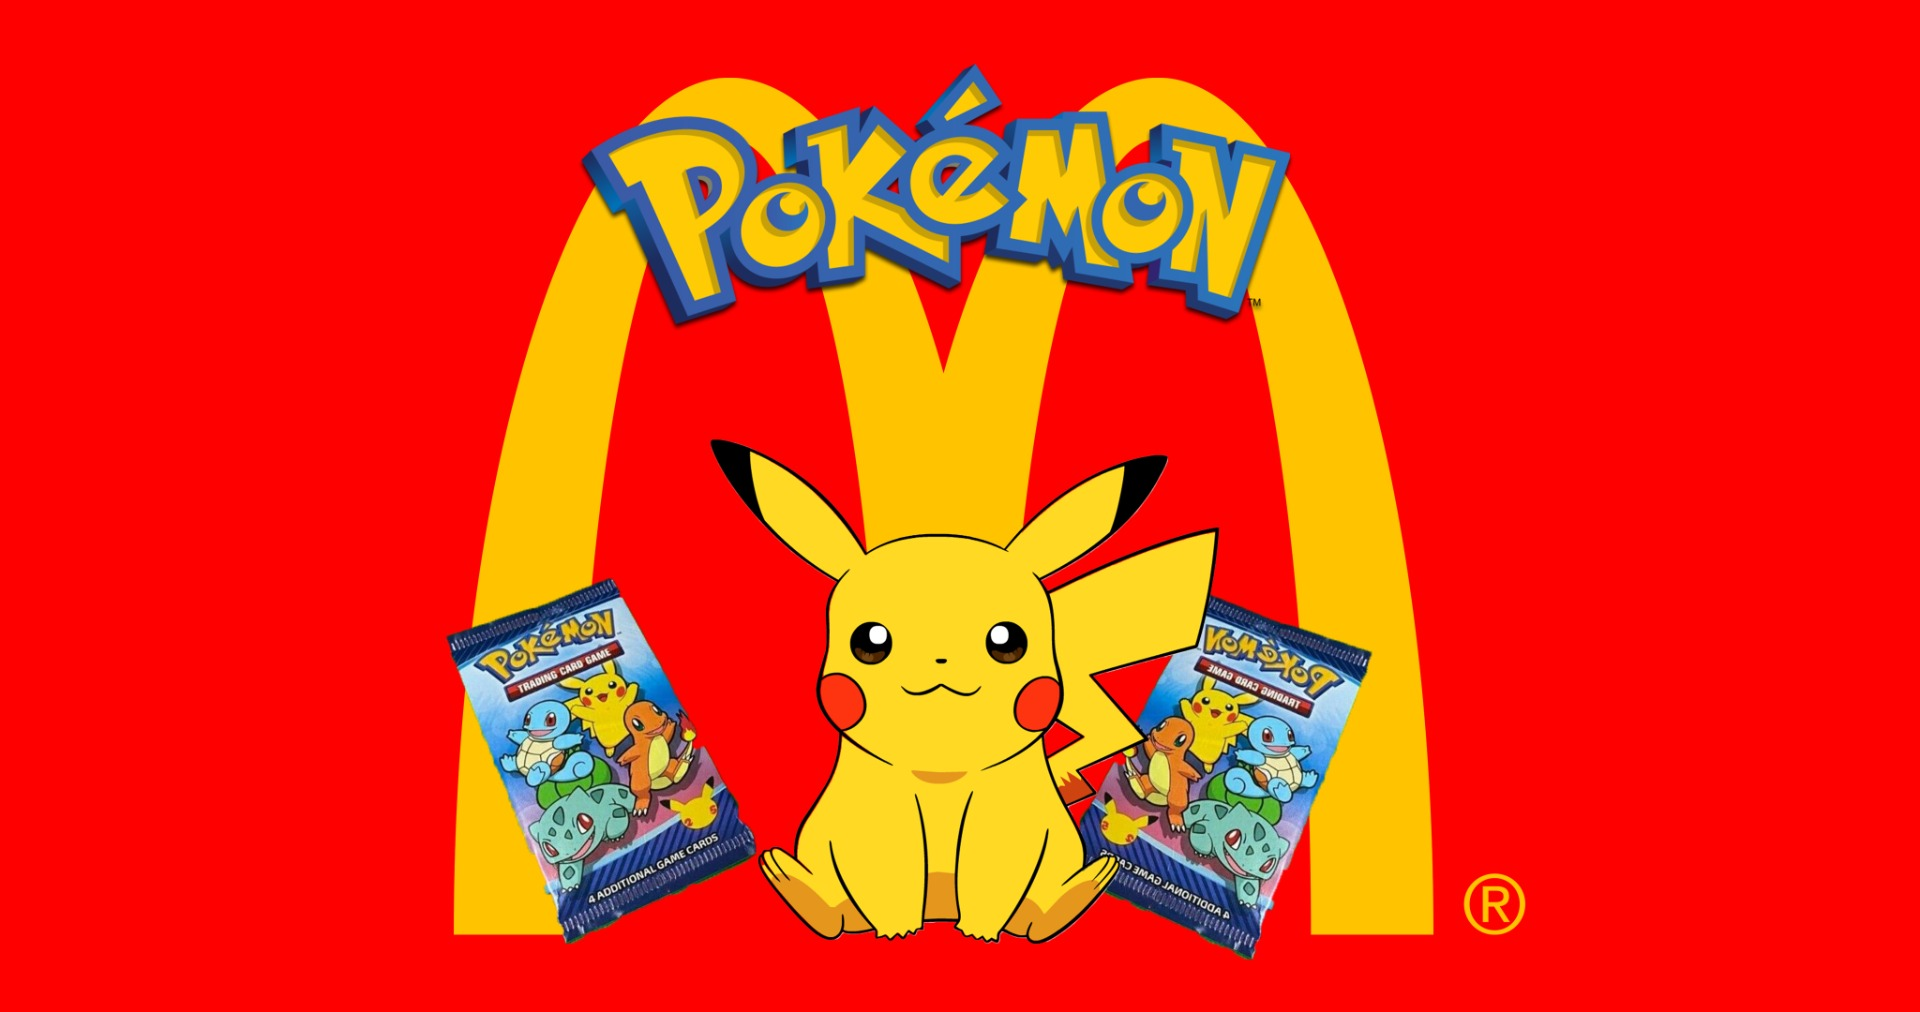 Pokemon McDonalds booster packs